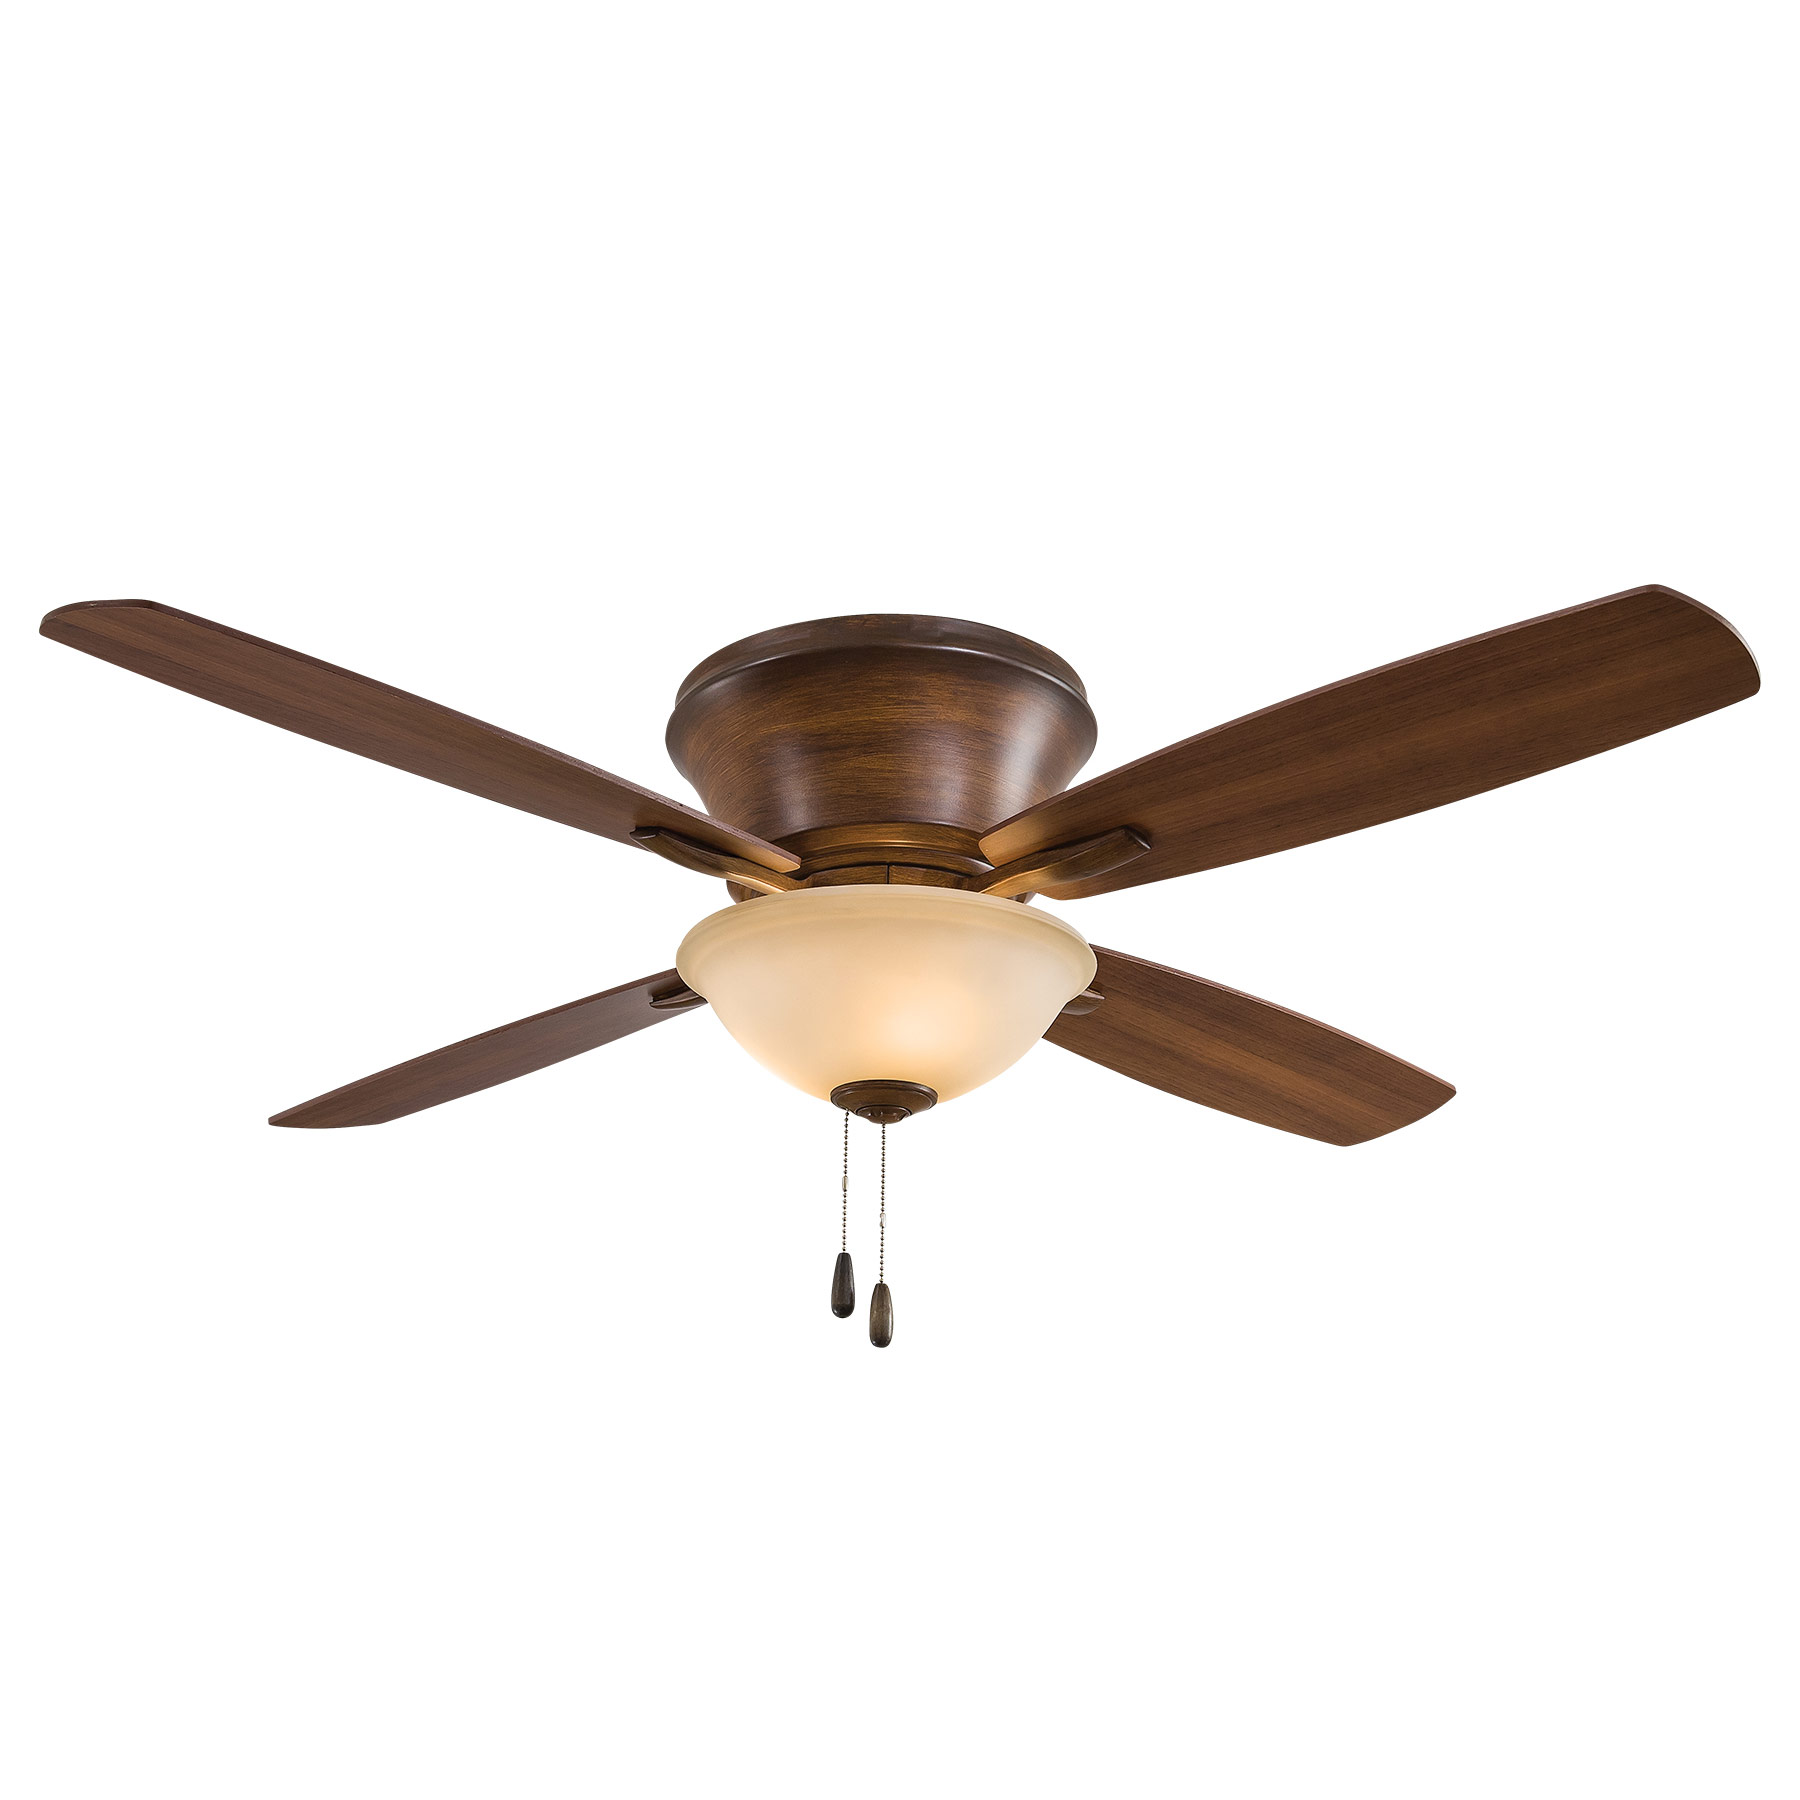 II Flush Mount Ceiling Fan by Minka Aire